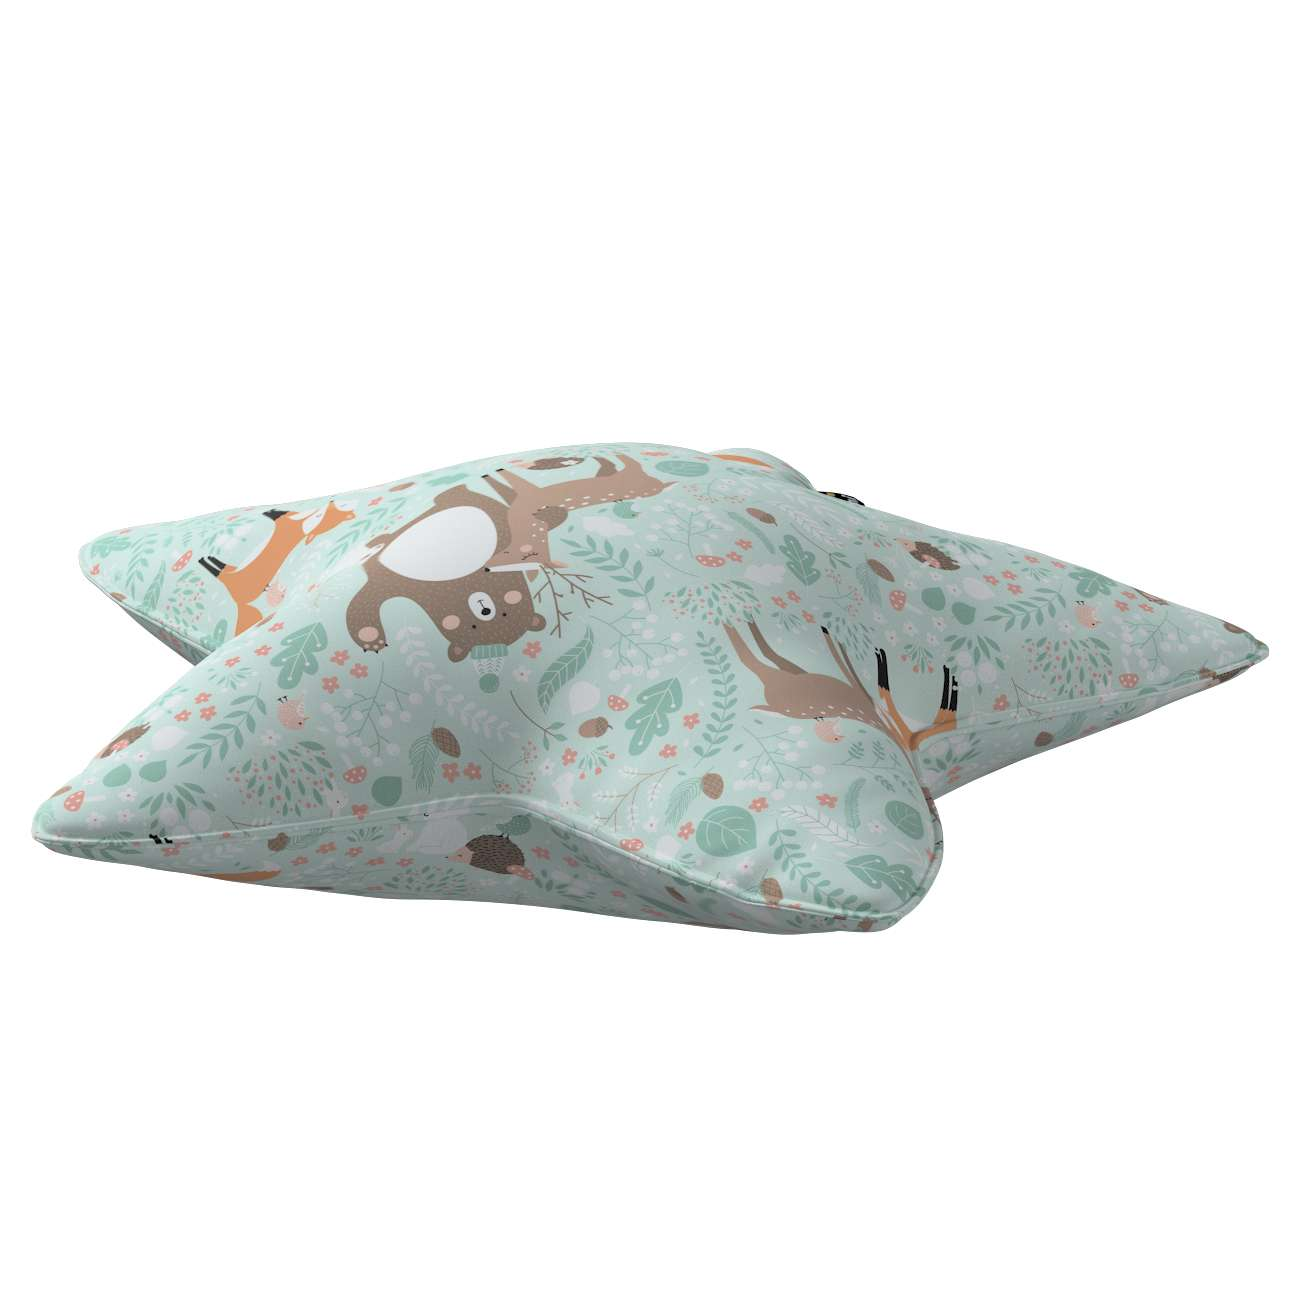 Lucky Star pillow in collection Magic Collection, fabric: 500-15